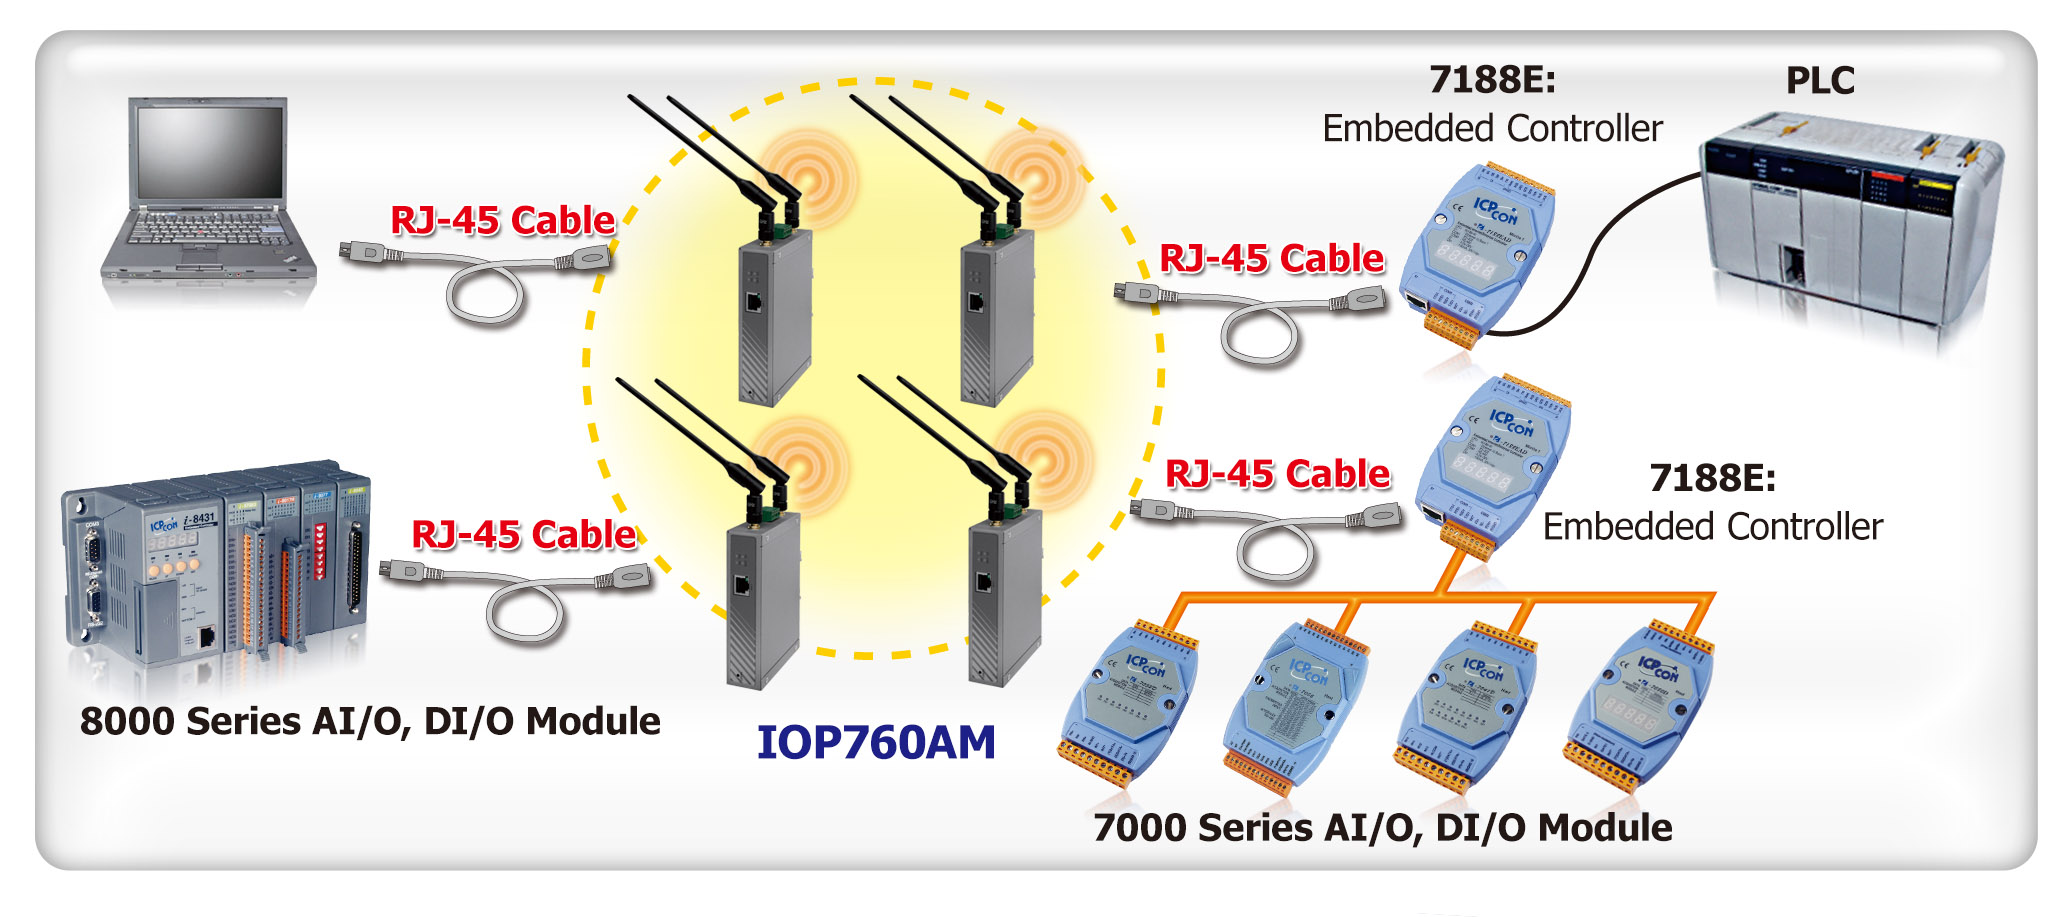 Icp Das M2m Wired To Wireless Solutions Ethernet Wlan Zigbeeca Network Diagram Is A Family Of Computer Networking Technologies For Local Area Networks Lans Commercially Introduced In 1980 And Has Become The Public